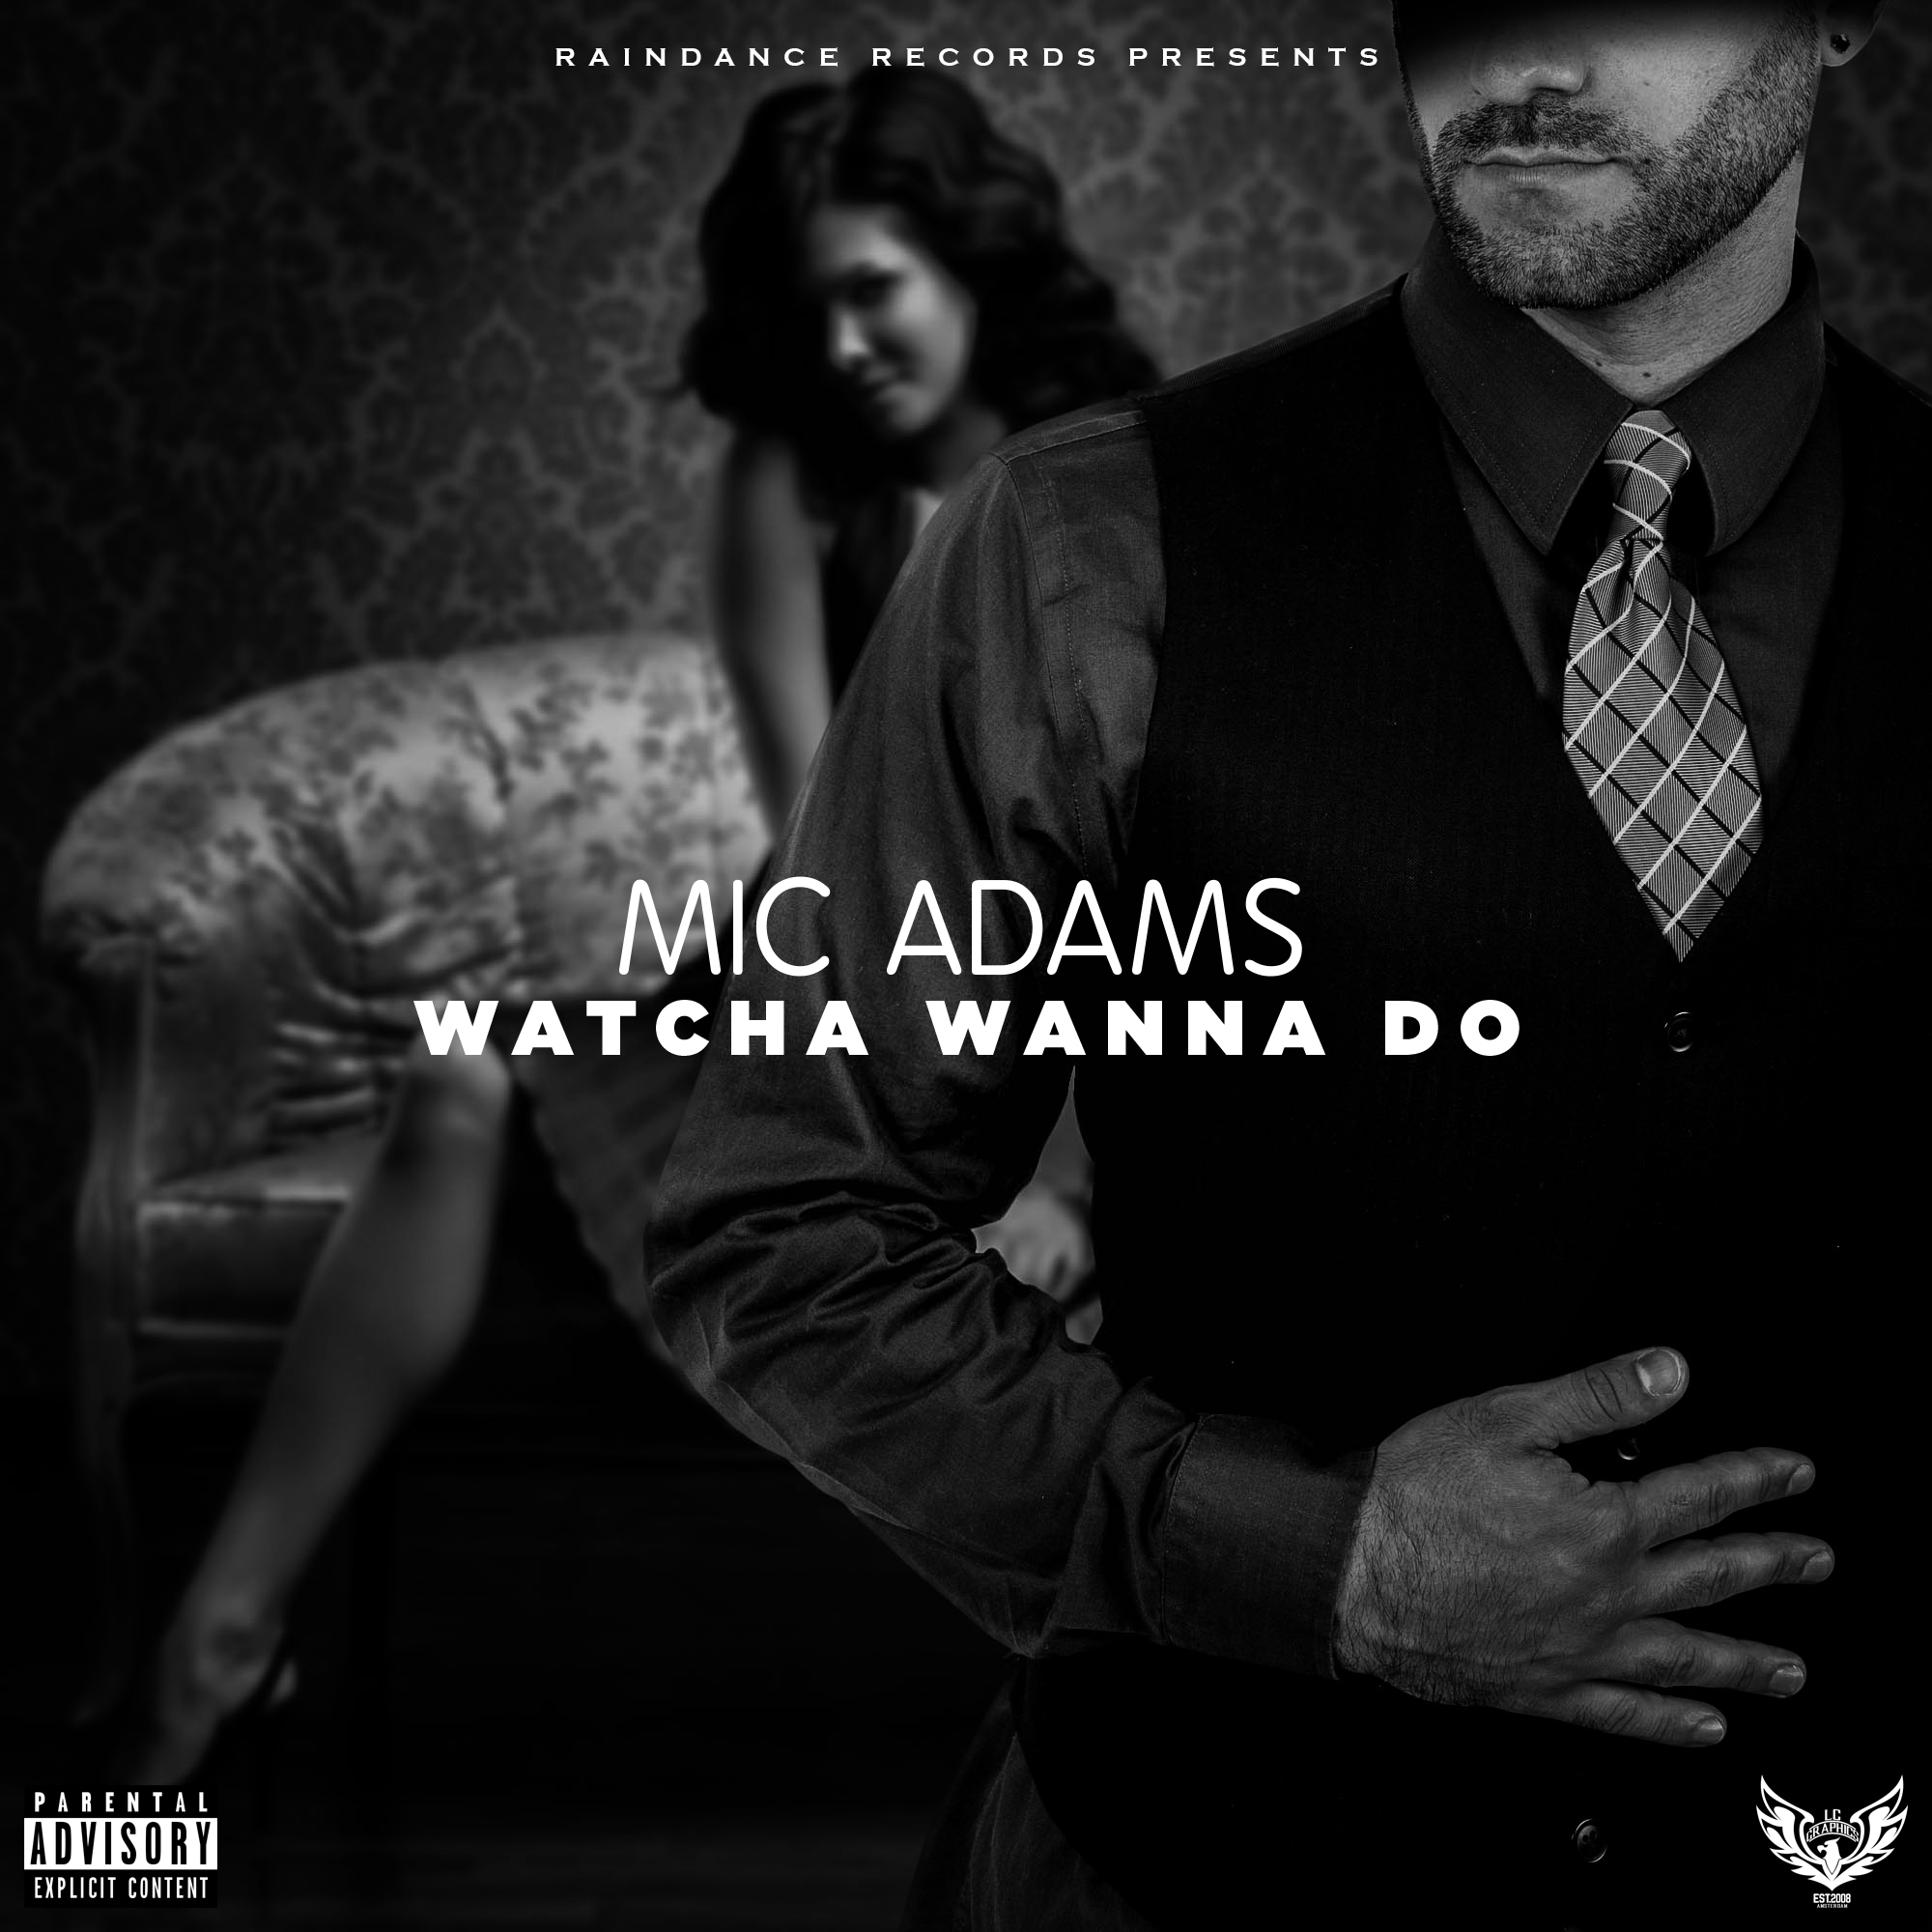 Mic Adams - Whatcha Wanna Do cover art (byLCGraphics)